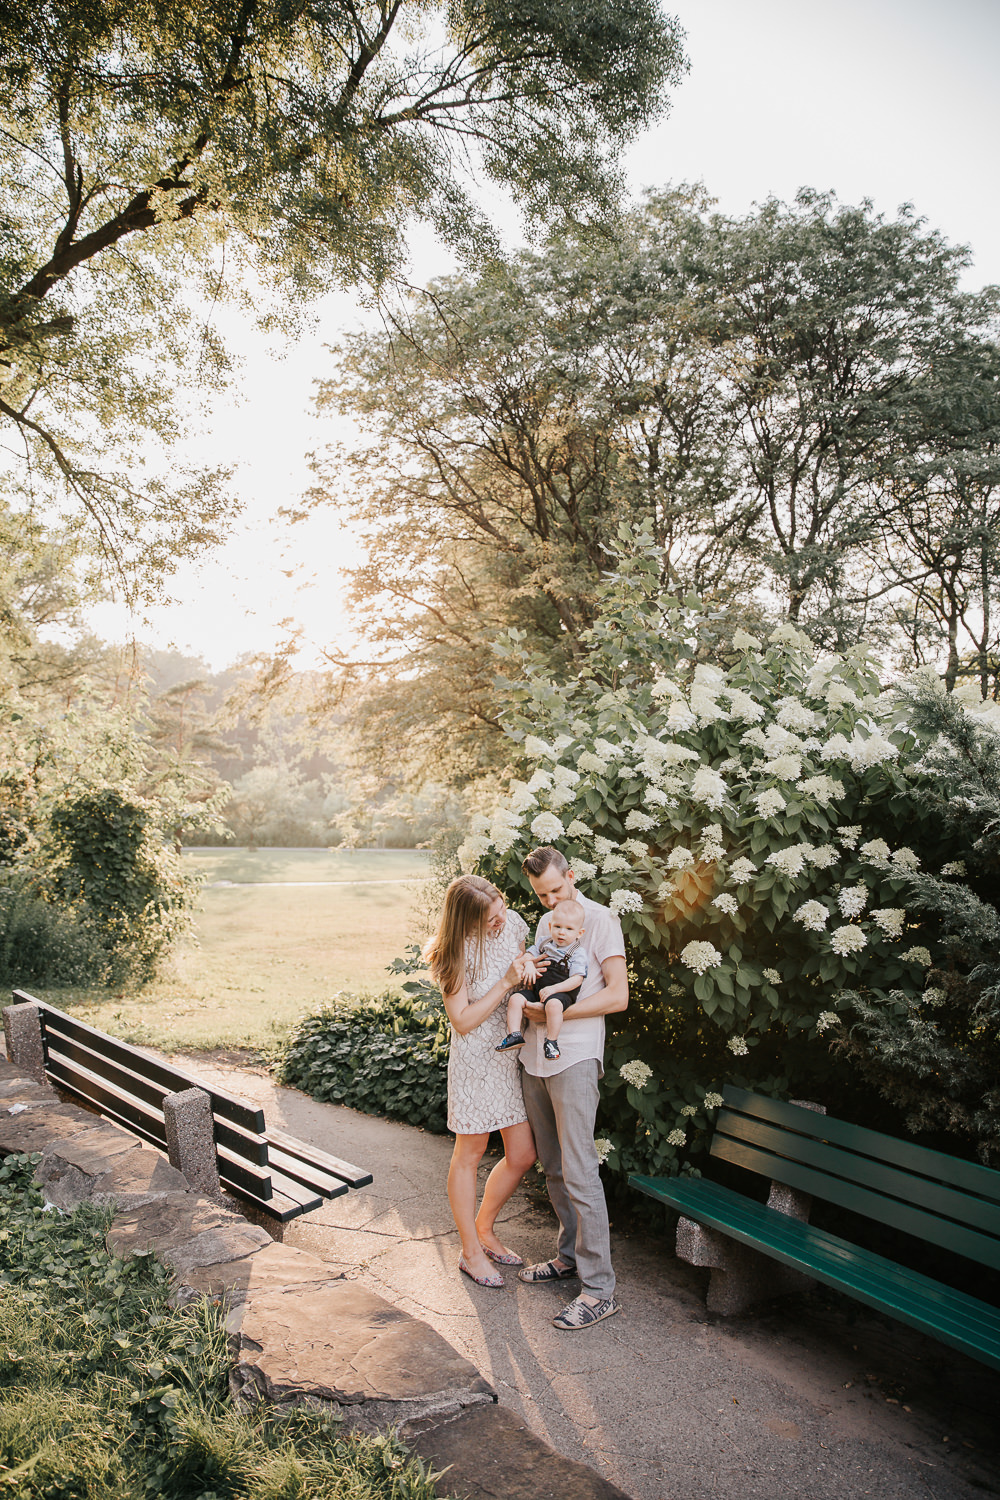 family of 3 standing in high park, setting golden sun behind them, father carrying 8 month old blonde baby boy and mom resting hand on baby, parents smiling at son -Stouffville Lifestyle Photos